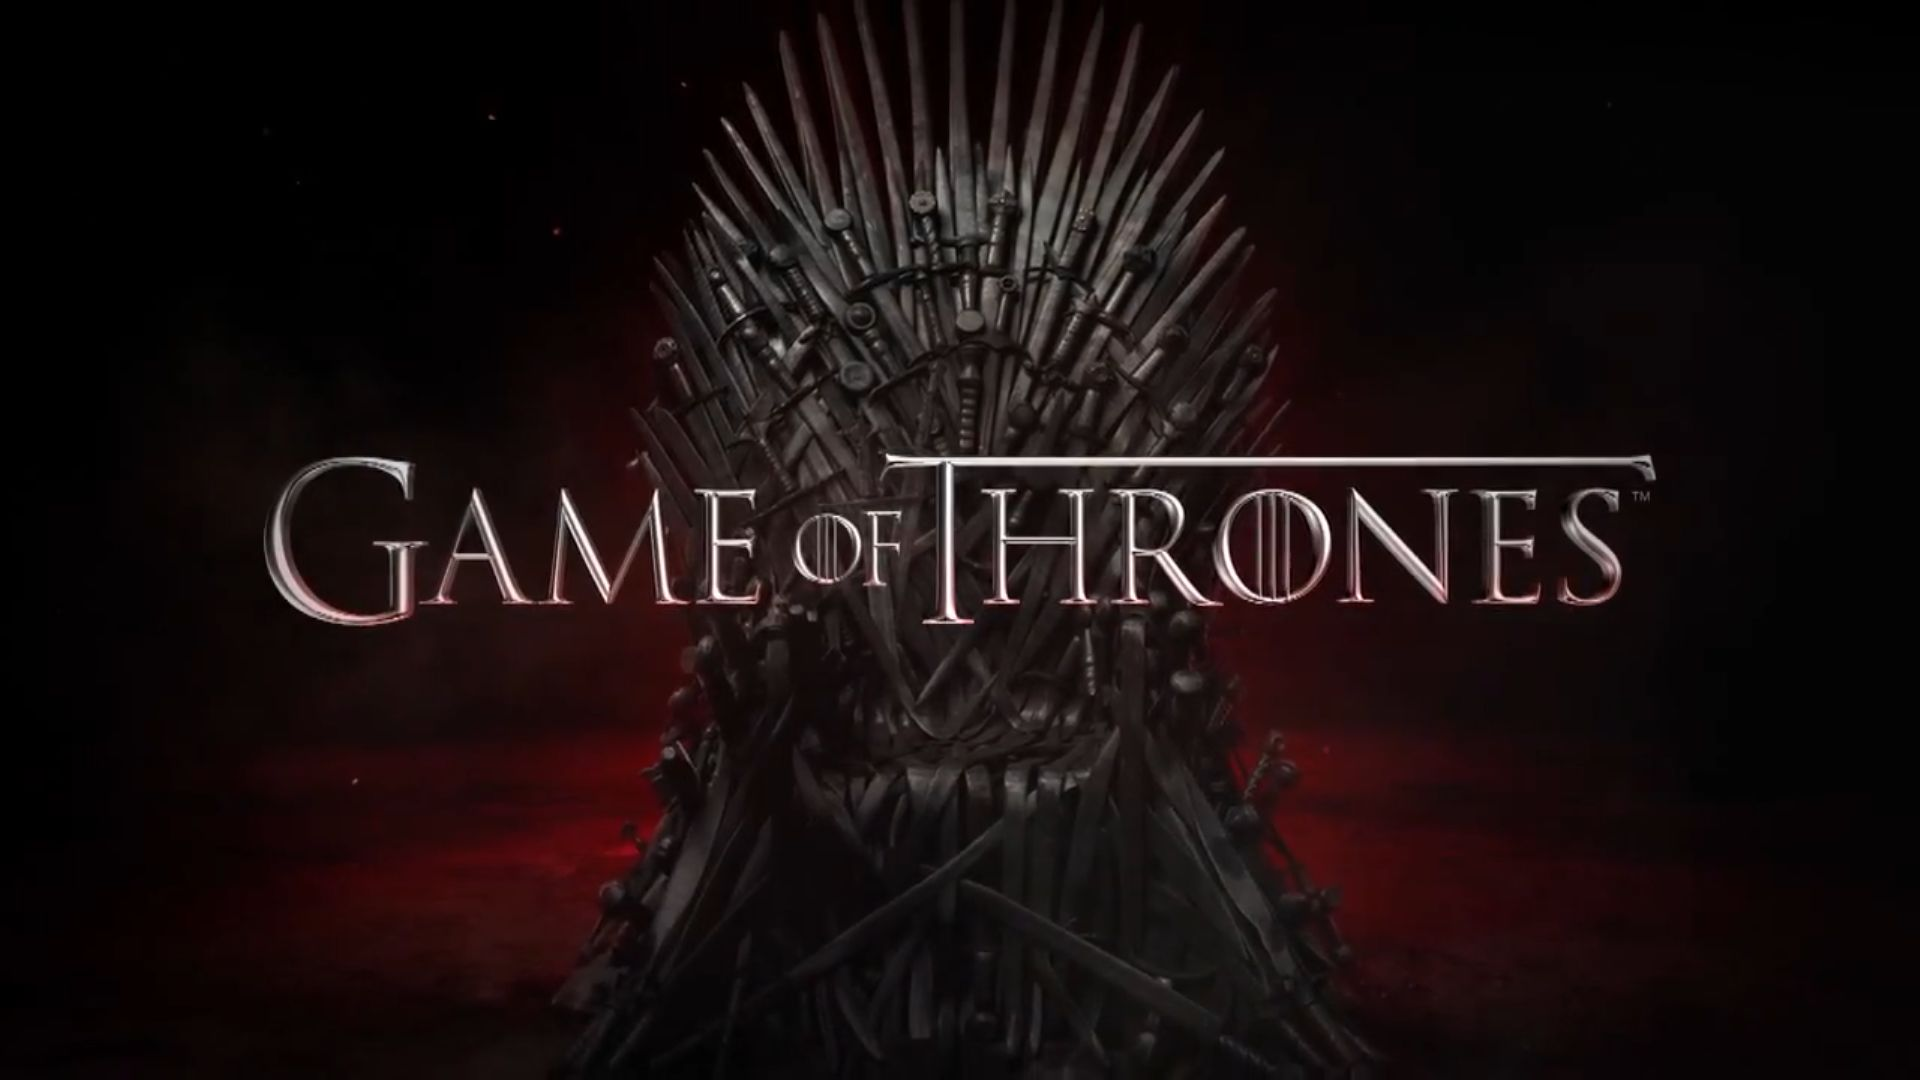 Game of Thrones retrasada hasta el verano de 2017